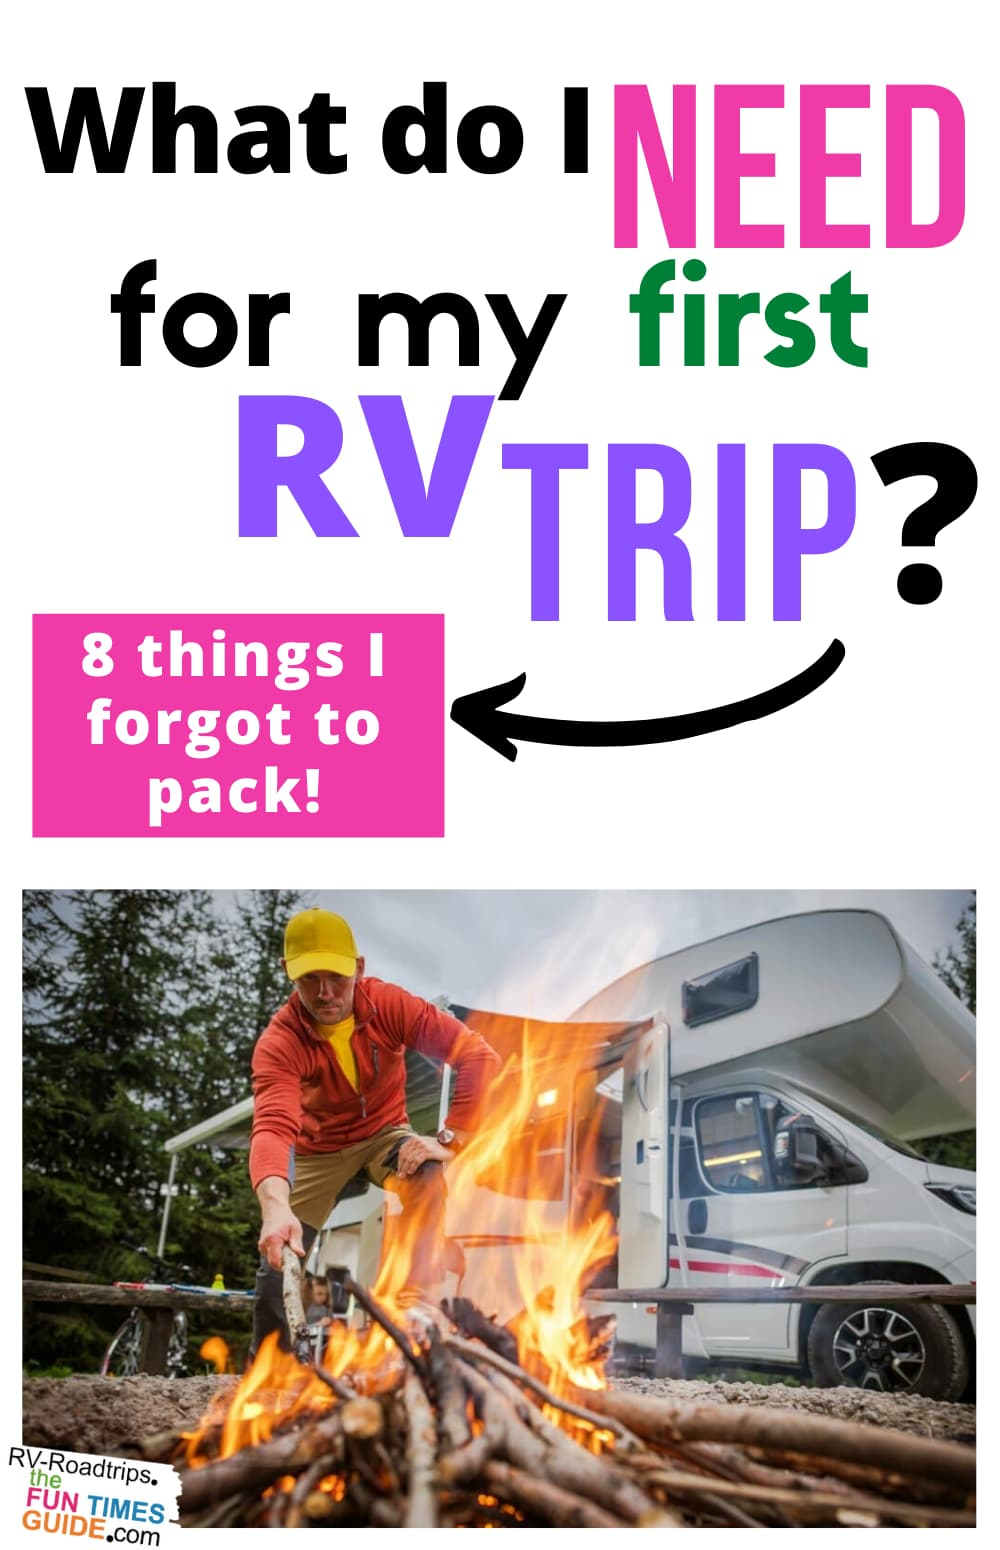 8 Items I Wish I Had On My Very First RV Trip! (Must-Have RV Supplies)